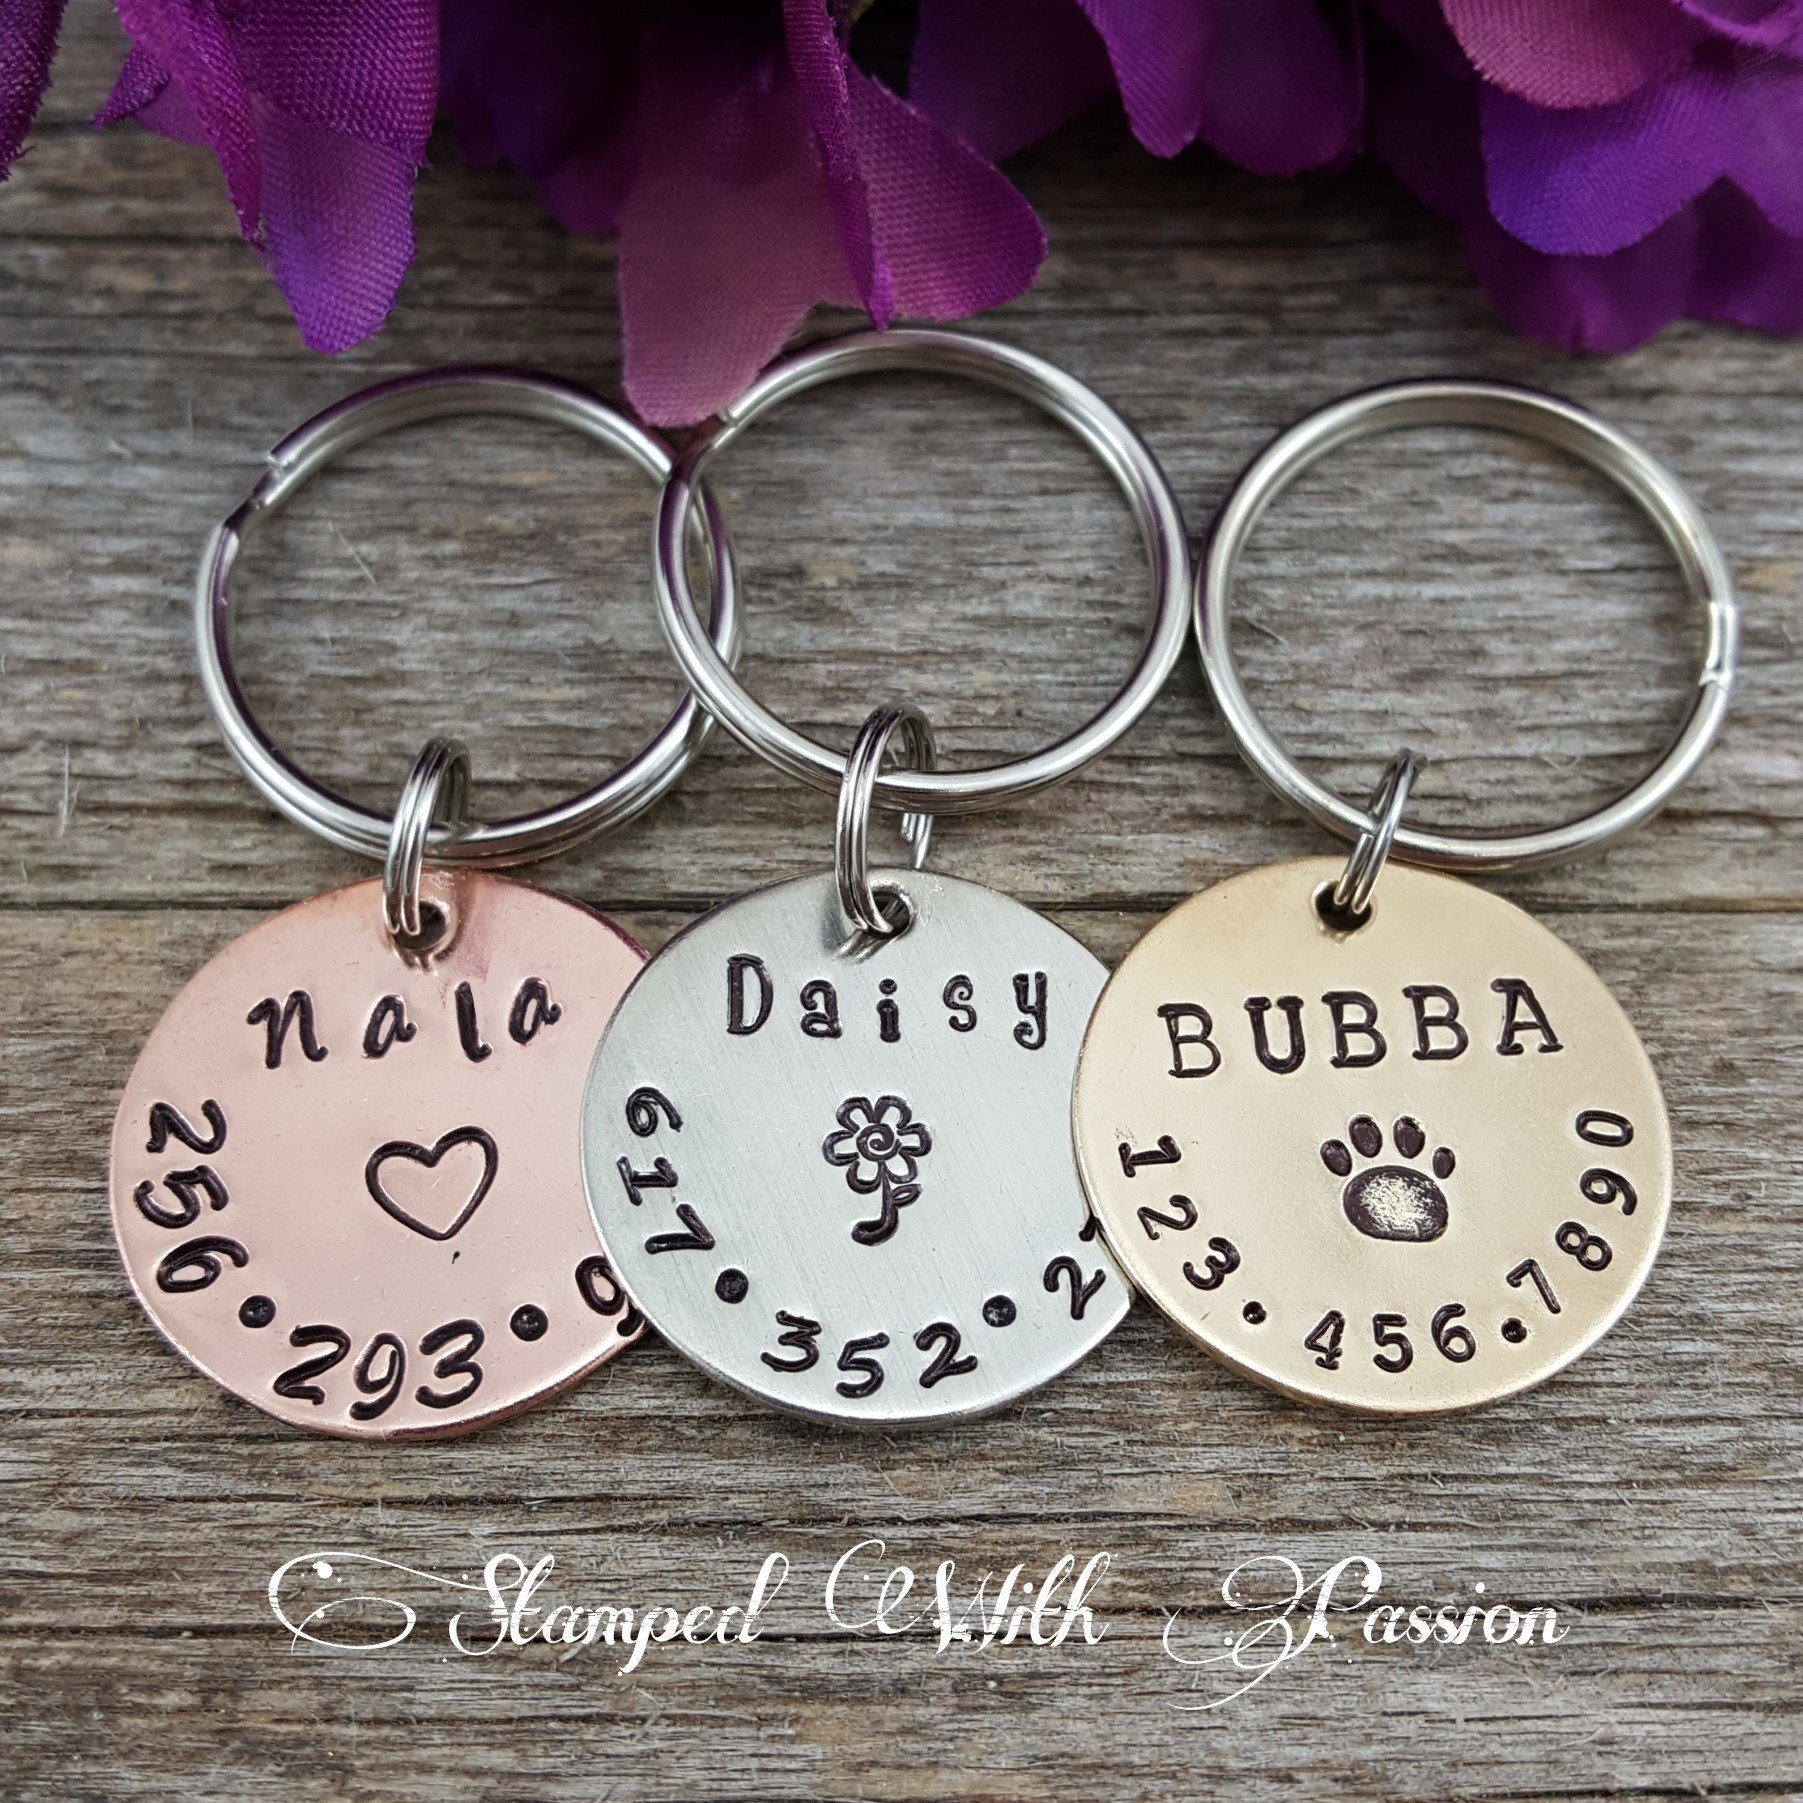 Dog Tag - Dog id Tag - Dog Name Tag - Hand Stamped - Paw Print Dog Tag - Dog tag for Collar - Pet id tag dog - Personalized tag - Custom Tag - Cat id tag - Horse halter tag